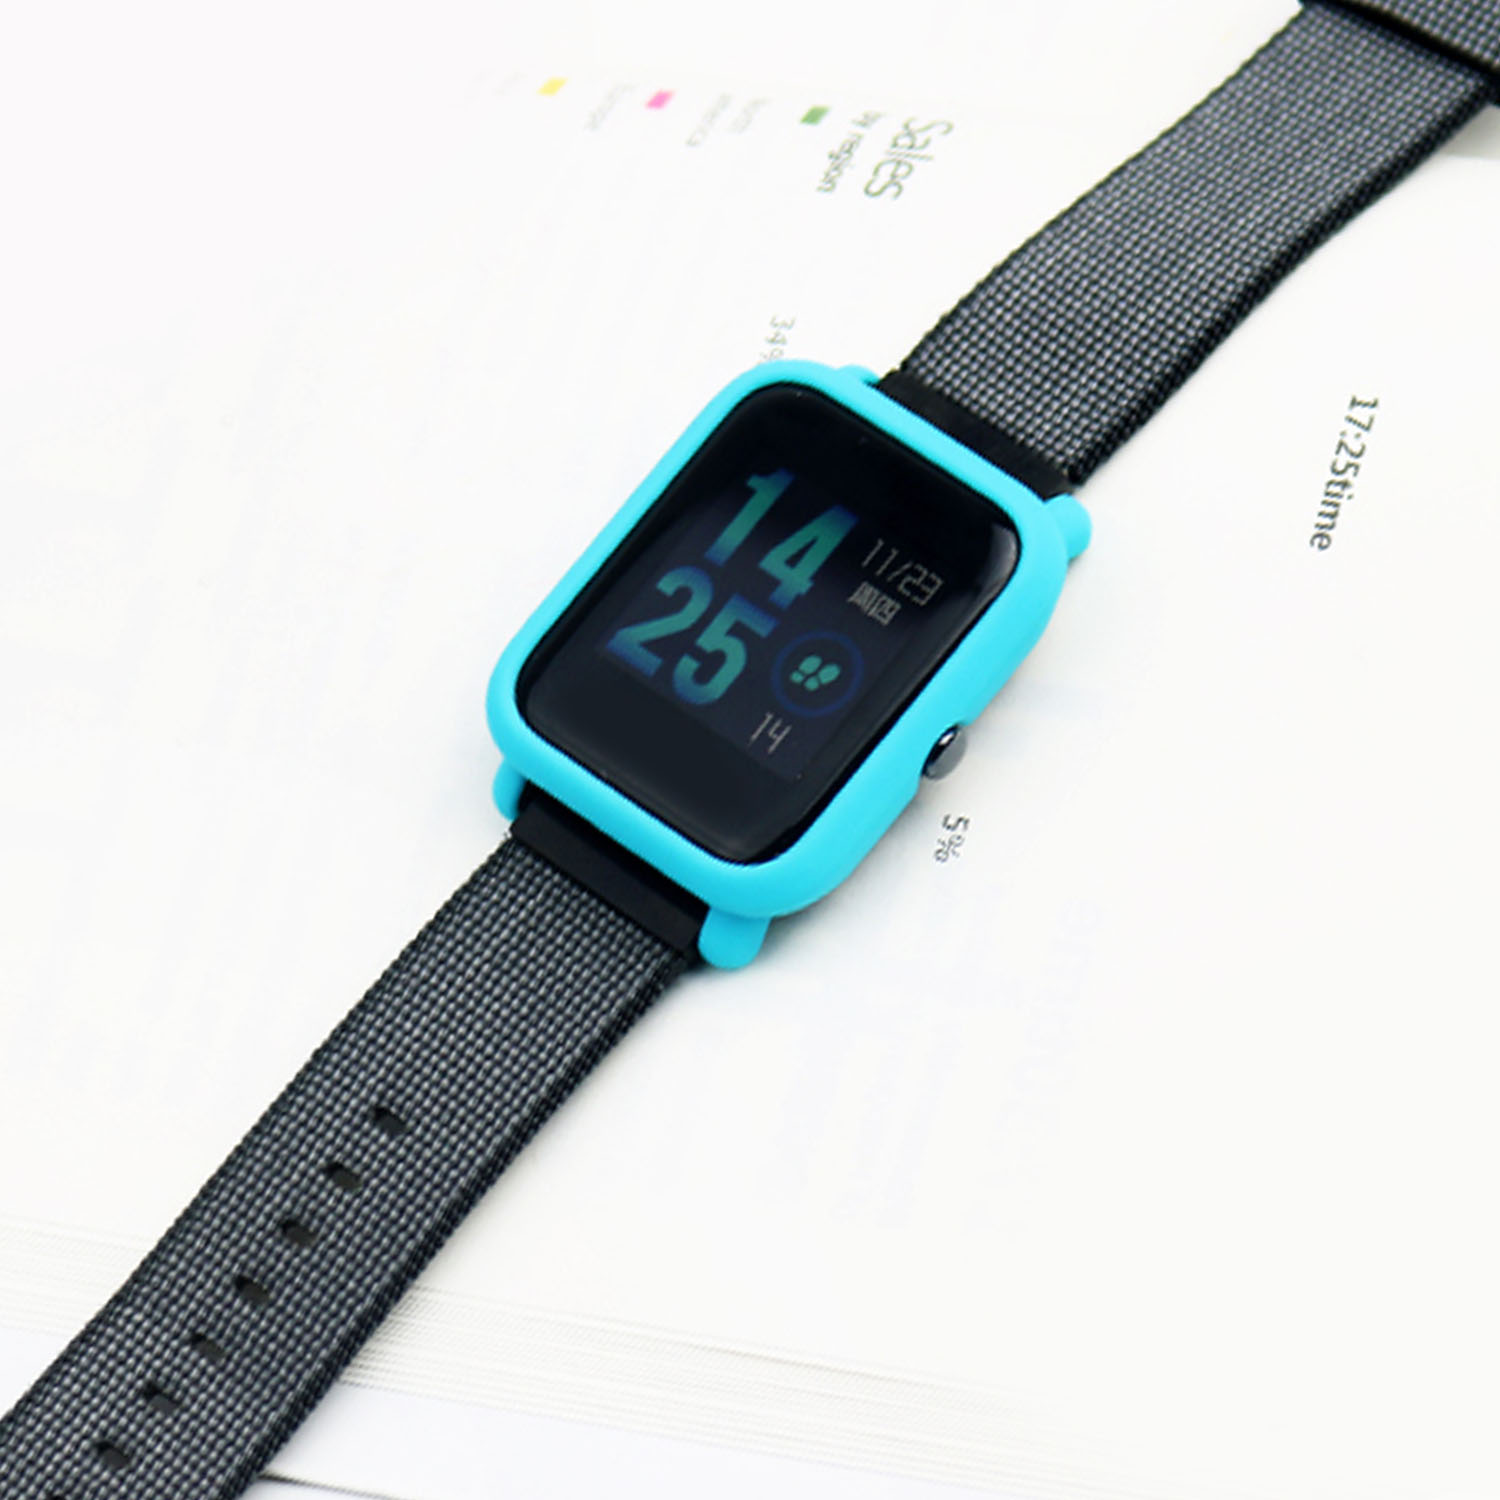 Lightweight Slim Smart Watch Protector Protective Frame Case Cover Xiaomi Amazfit Bip Protect Shell Easy To Install While Not Fall Off And Environmental Friendly Specification Material Pc Only Is